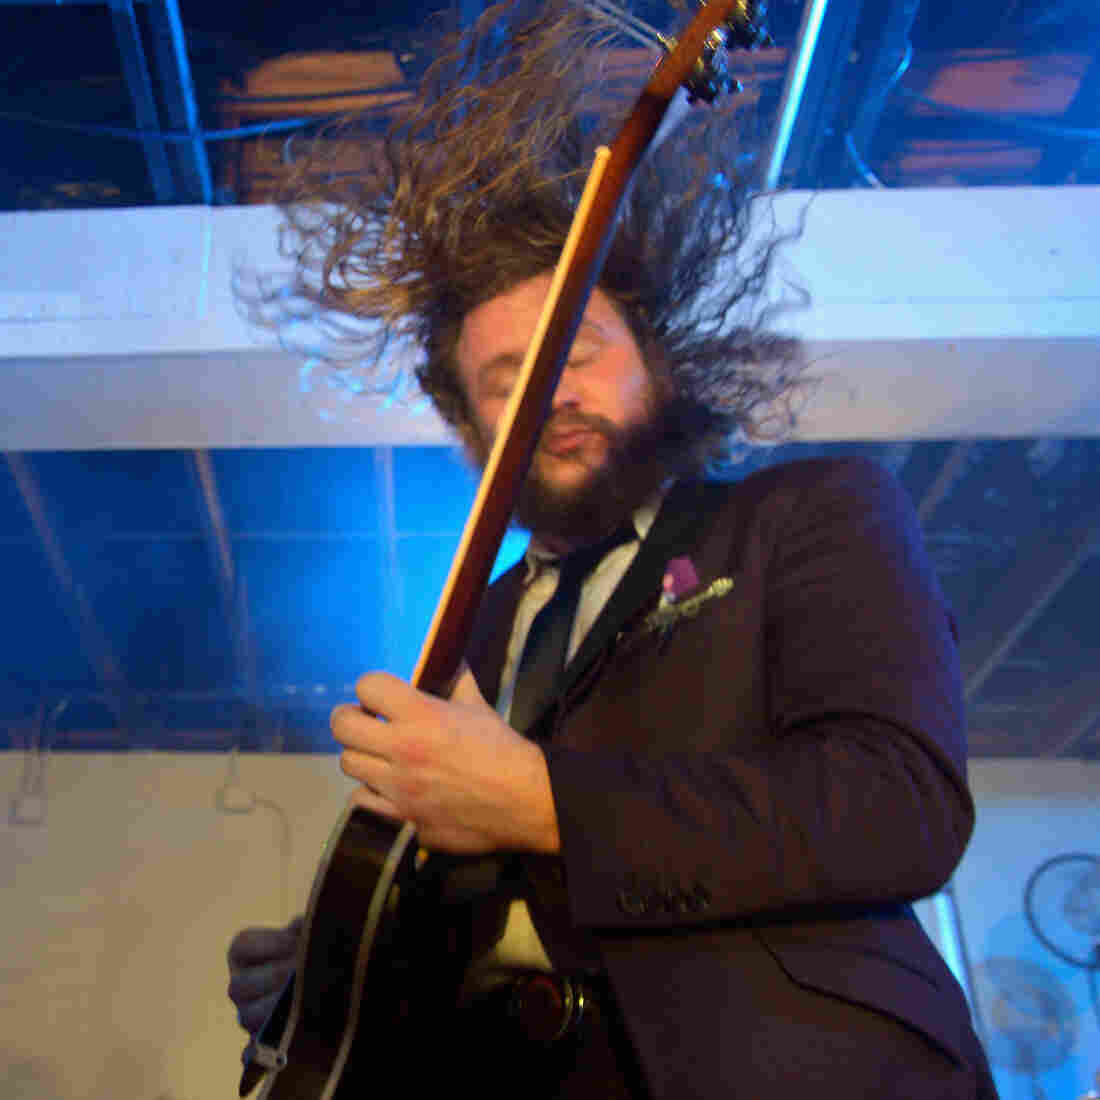 Jim James onstage during the opening night of the 2013 SXSW Music festival in Austin, Texas.